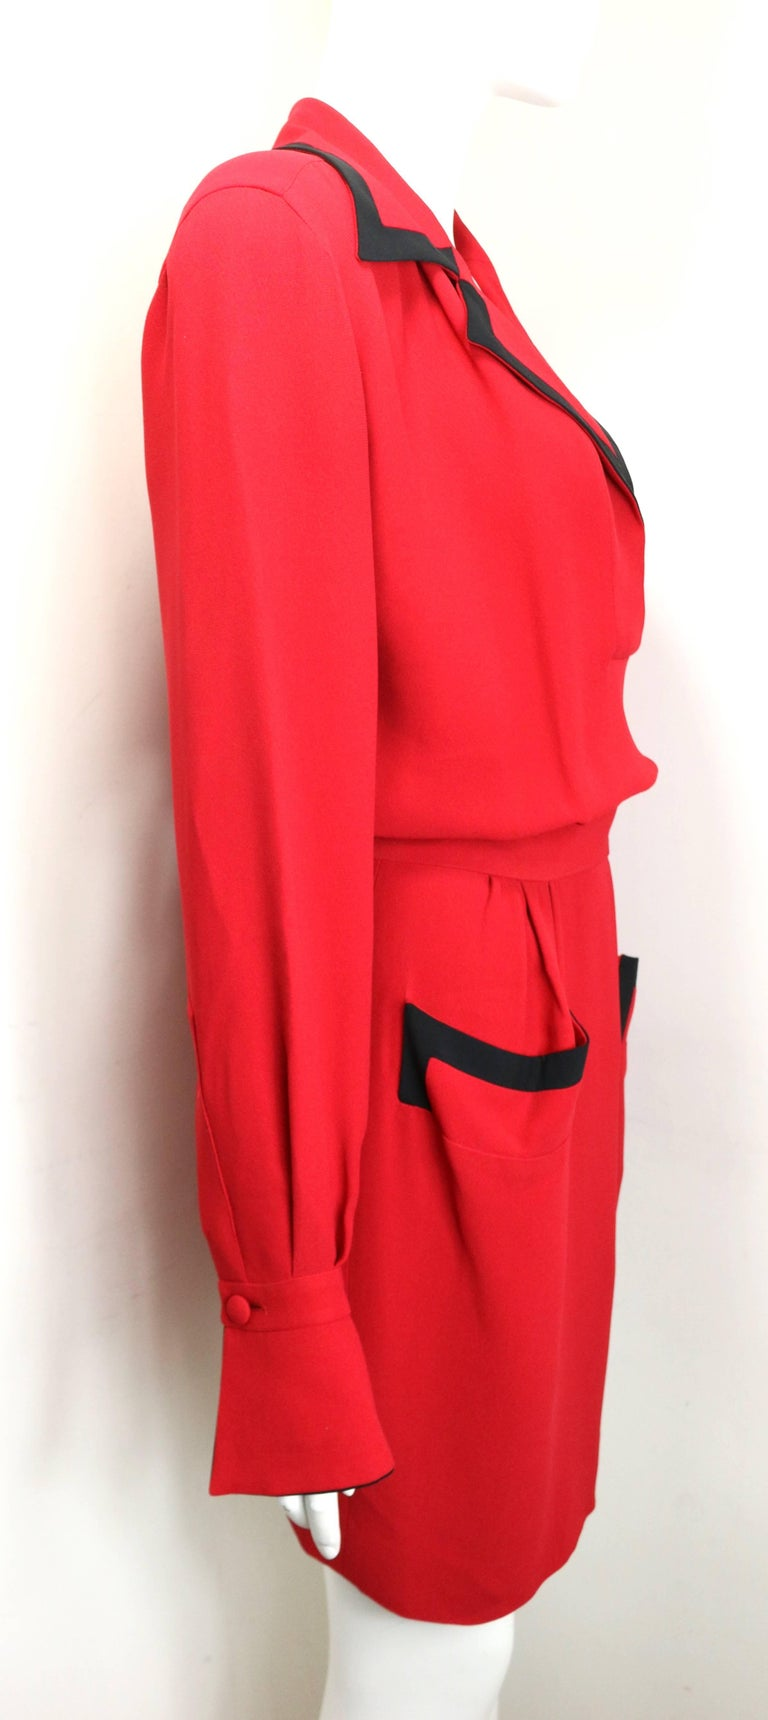 90s Moschino Couture Red Piping Black Trim Long Sleeves Dress  In Excellent Condition For Sale In Sheung Wan, HK